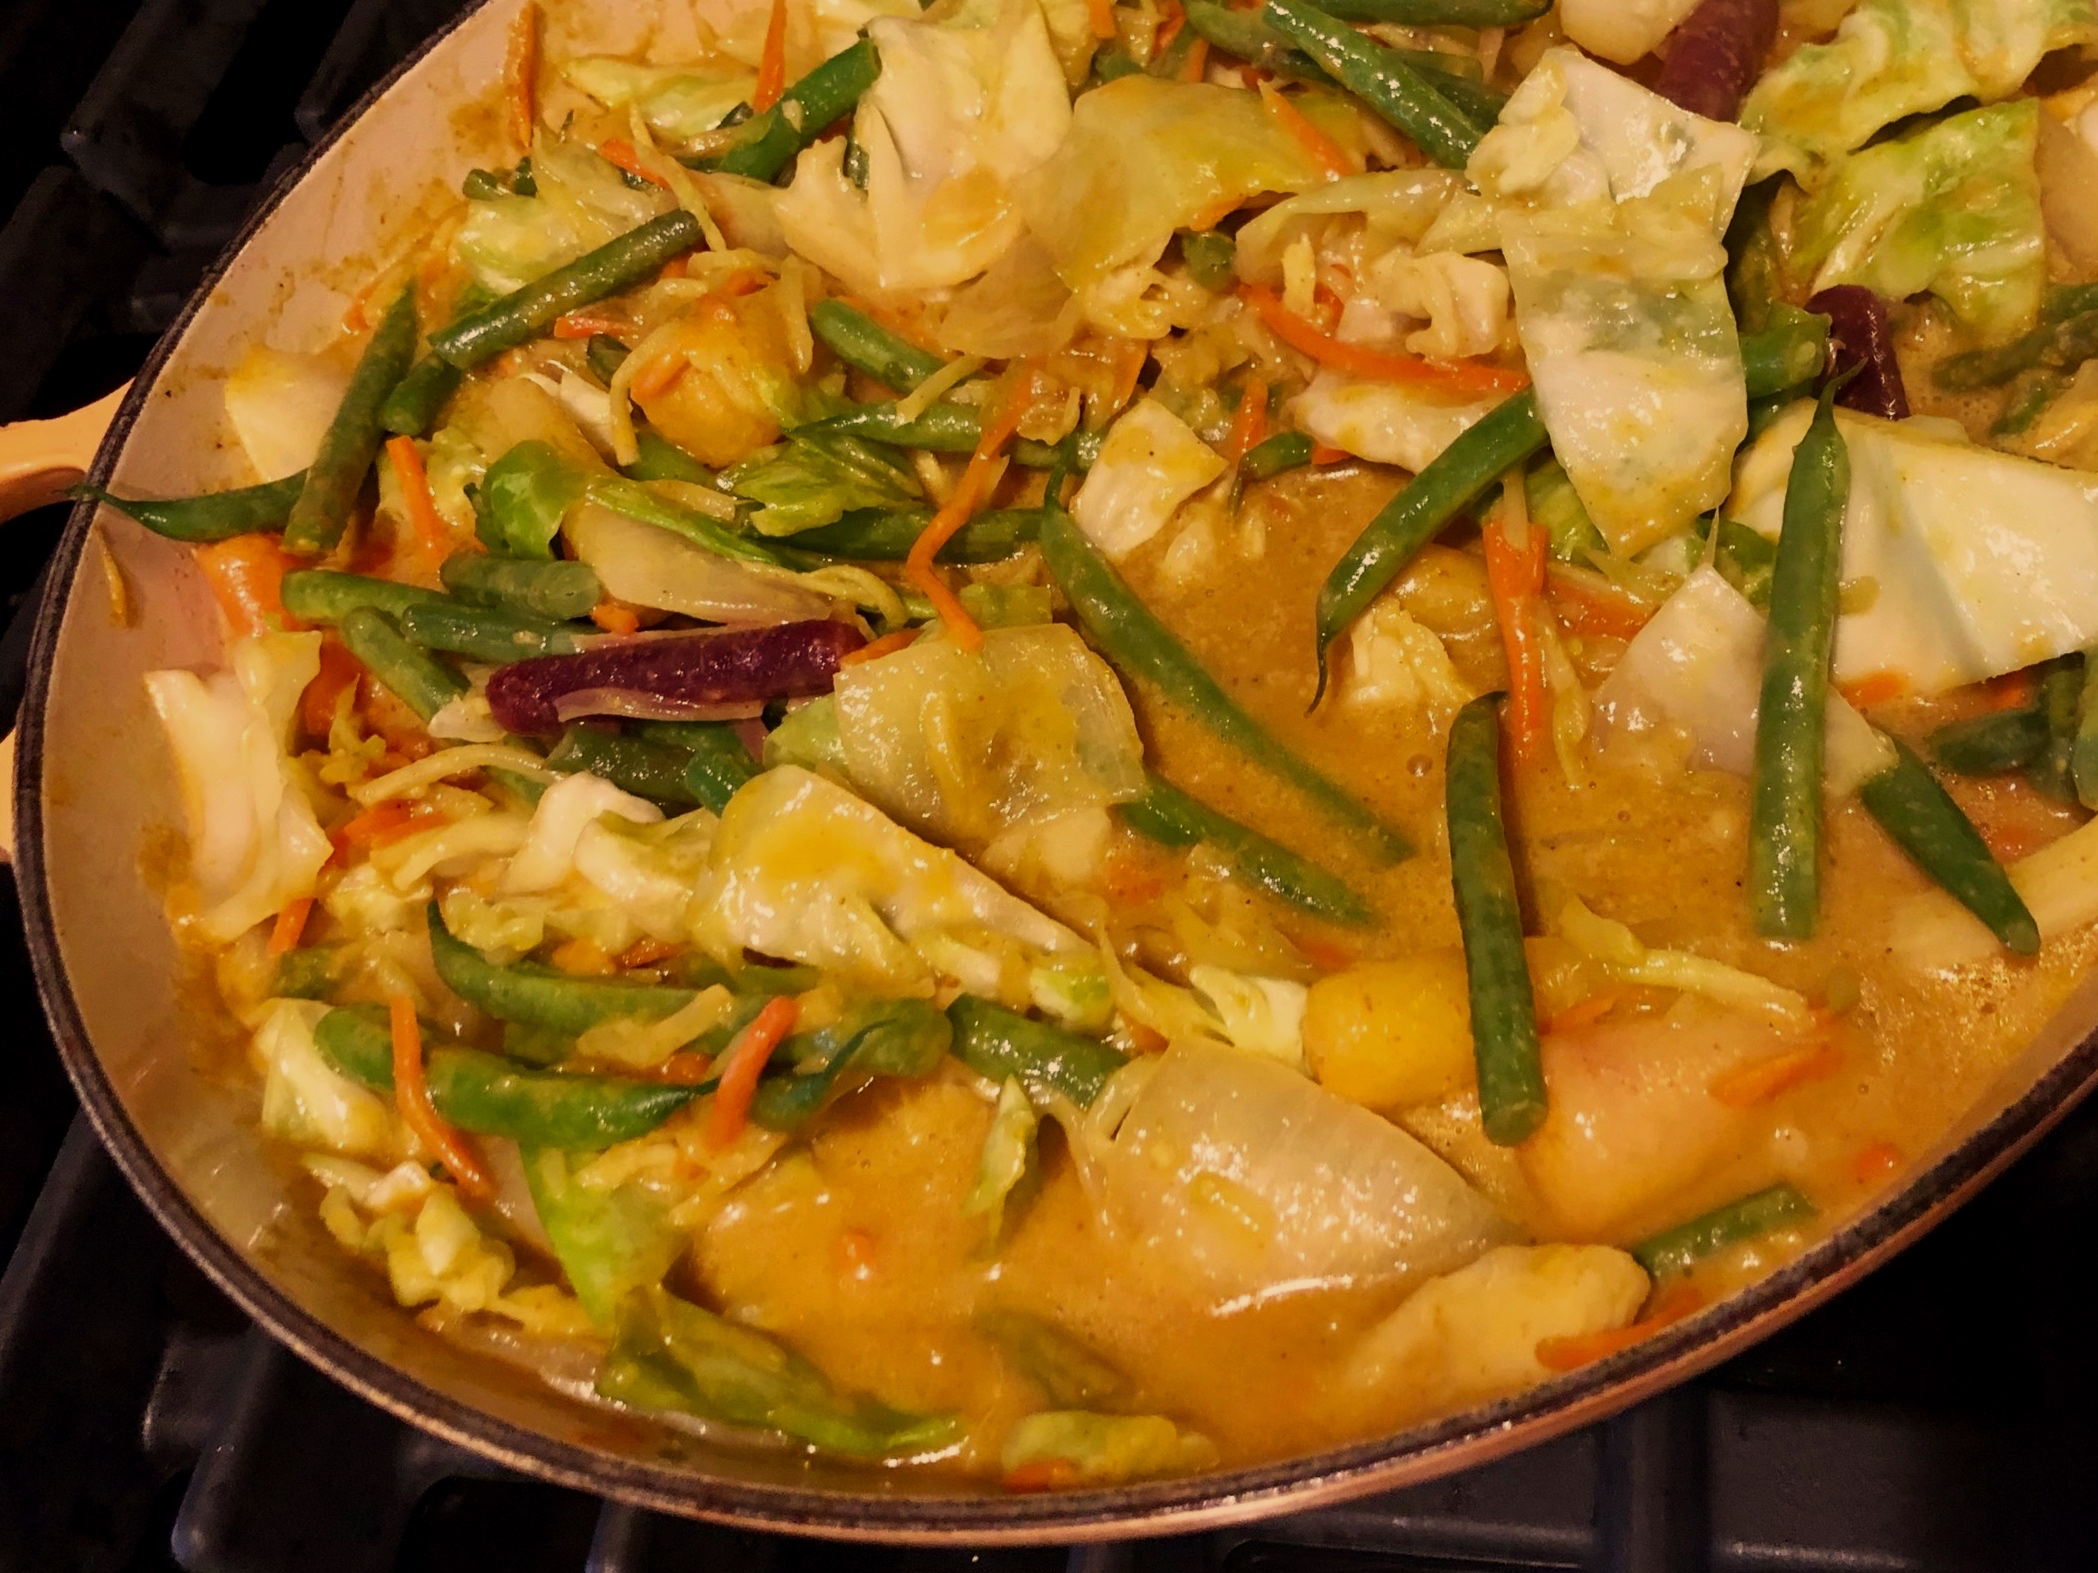 Veggies with curry sauce just added.